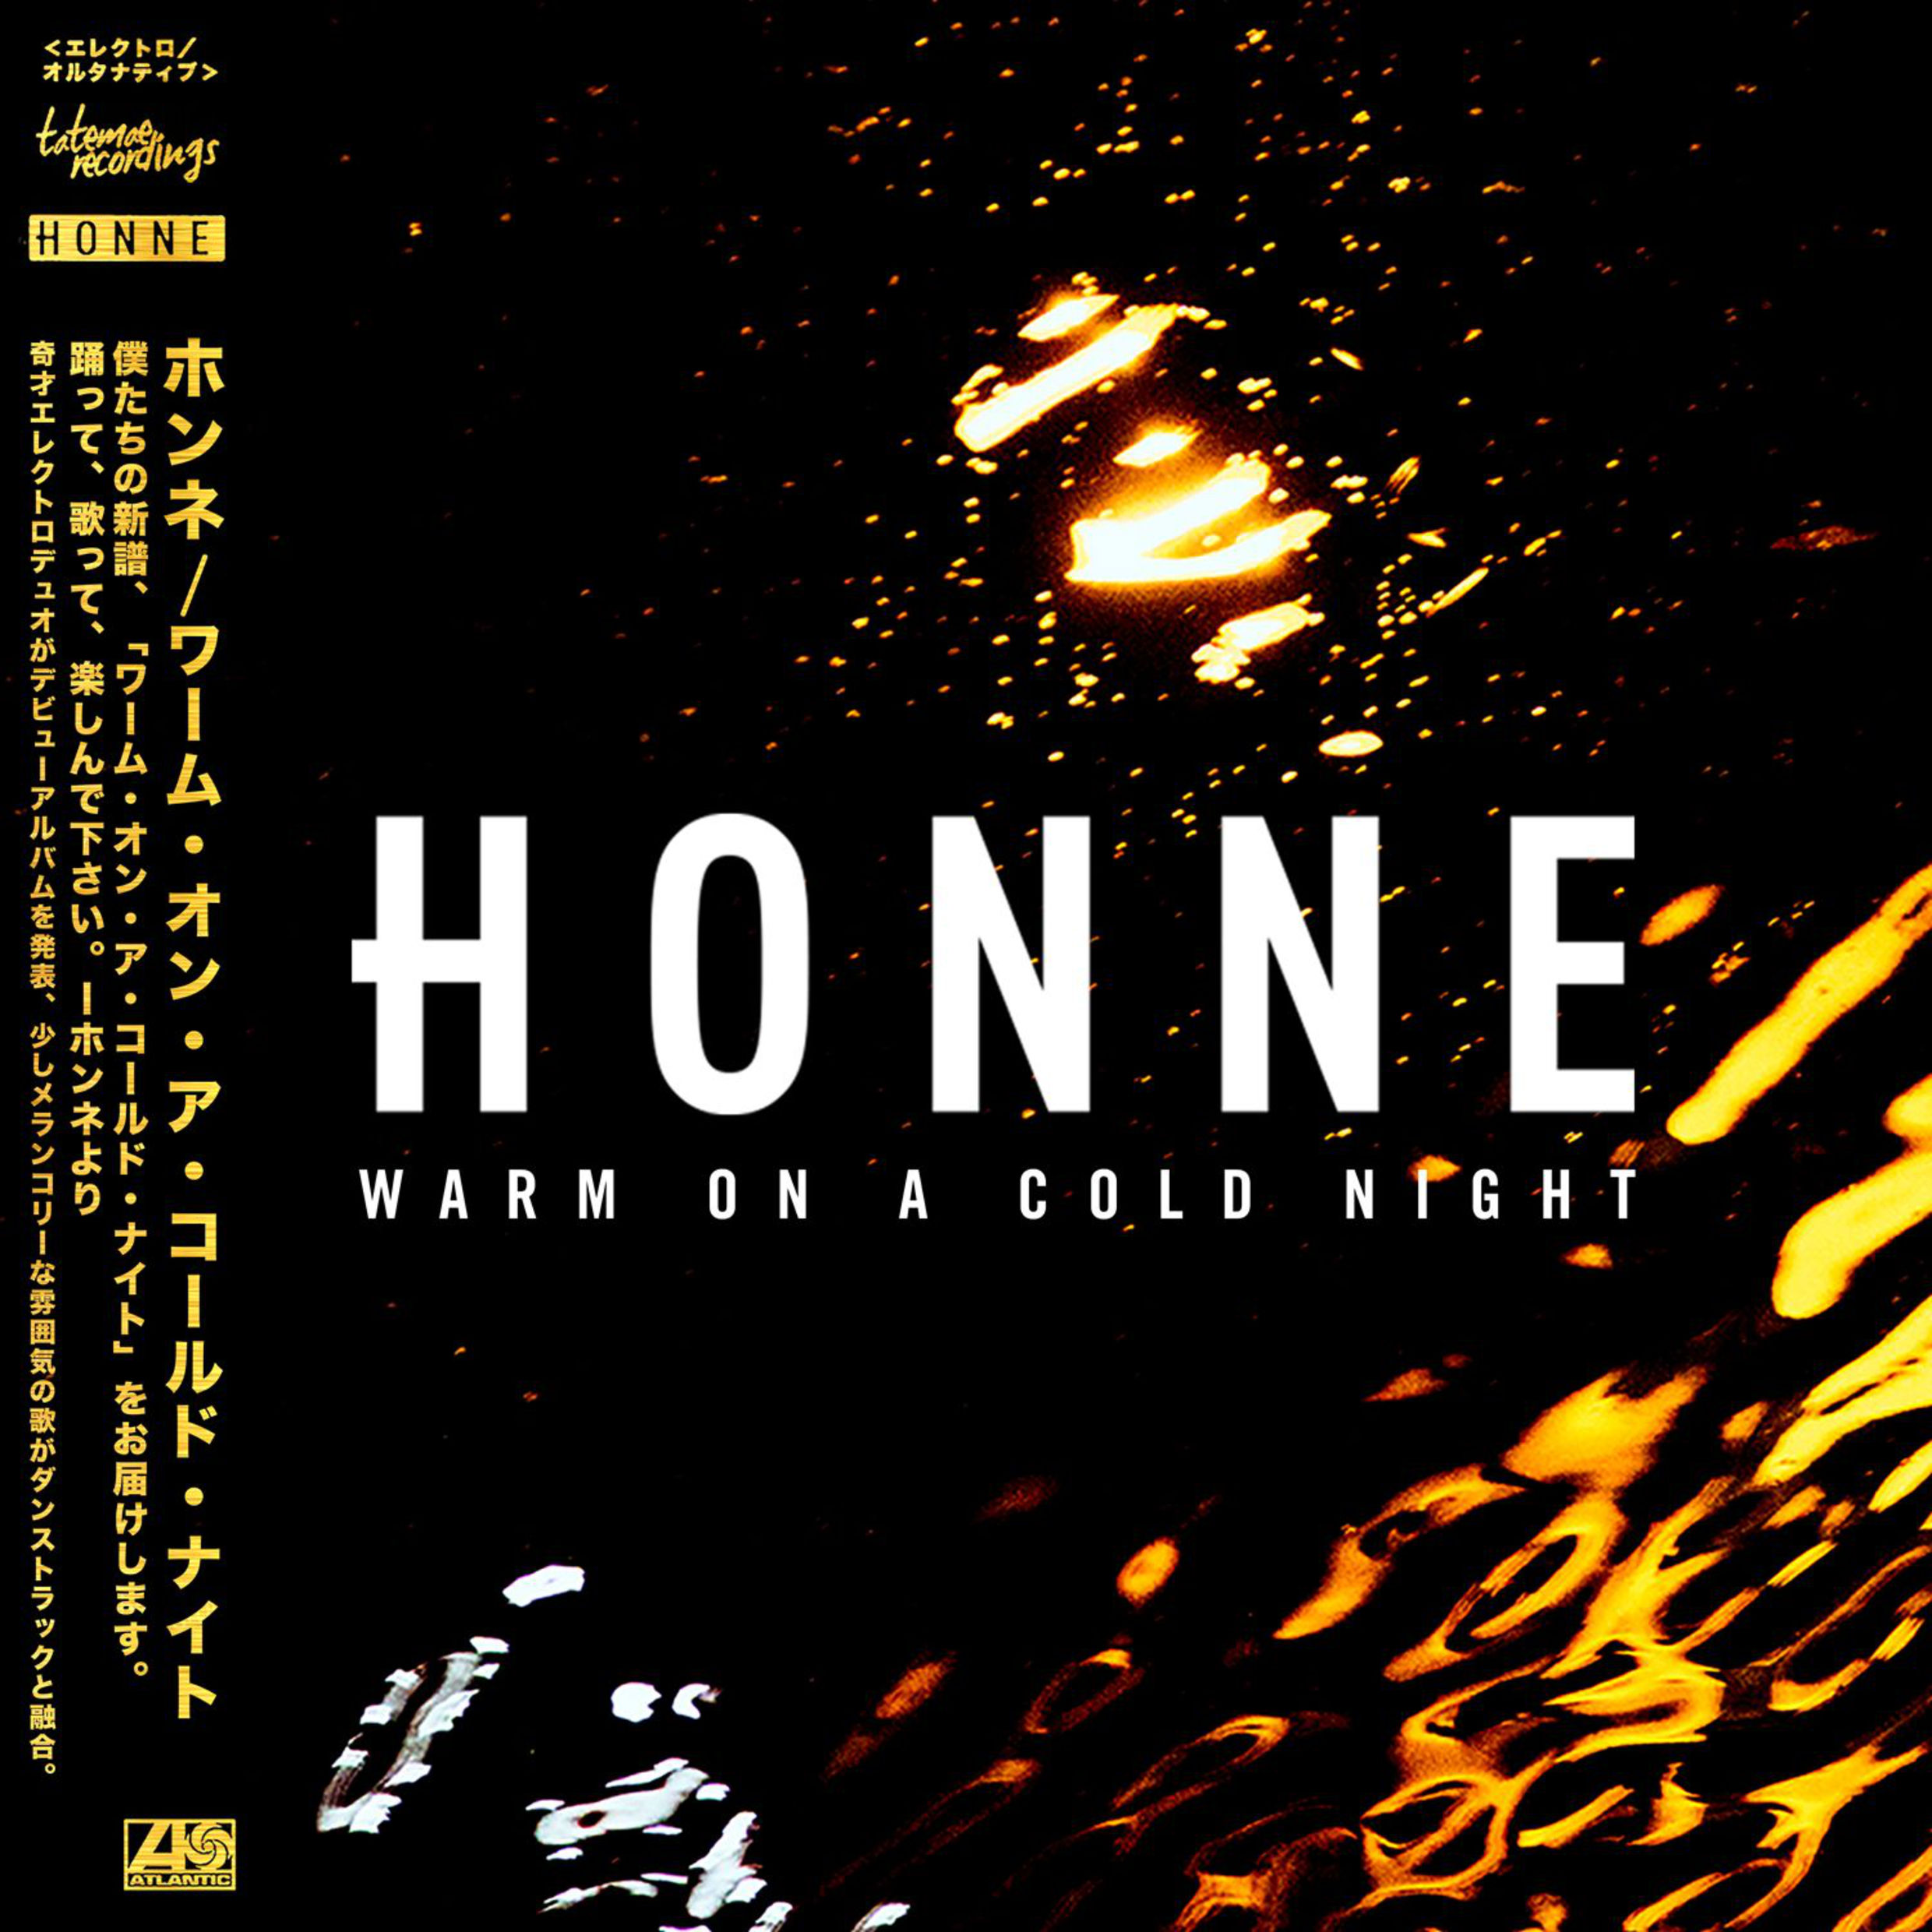 Honne – WARM ON A COLD NIGHT; VÖ: 22.07.